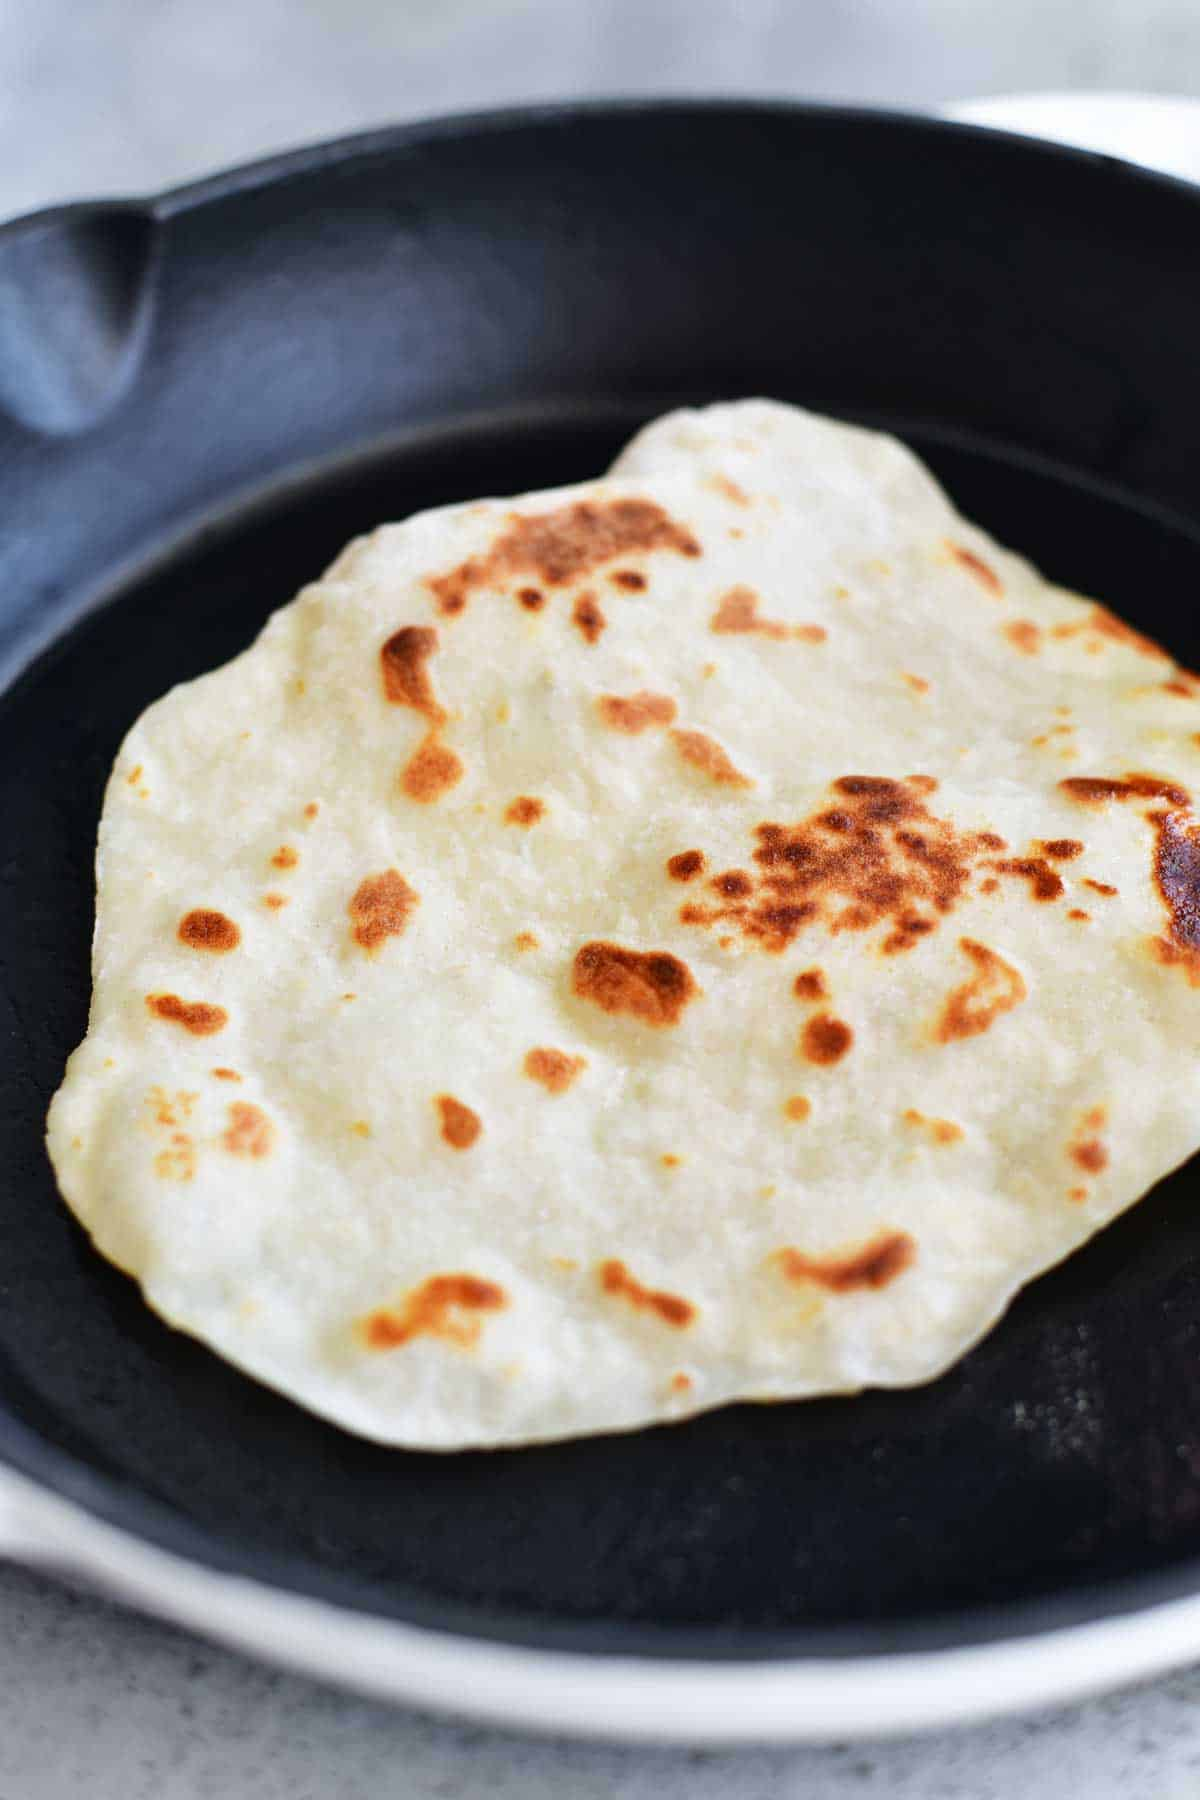 frying no yeast dough for naan flatbread